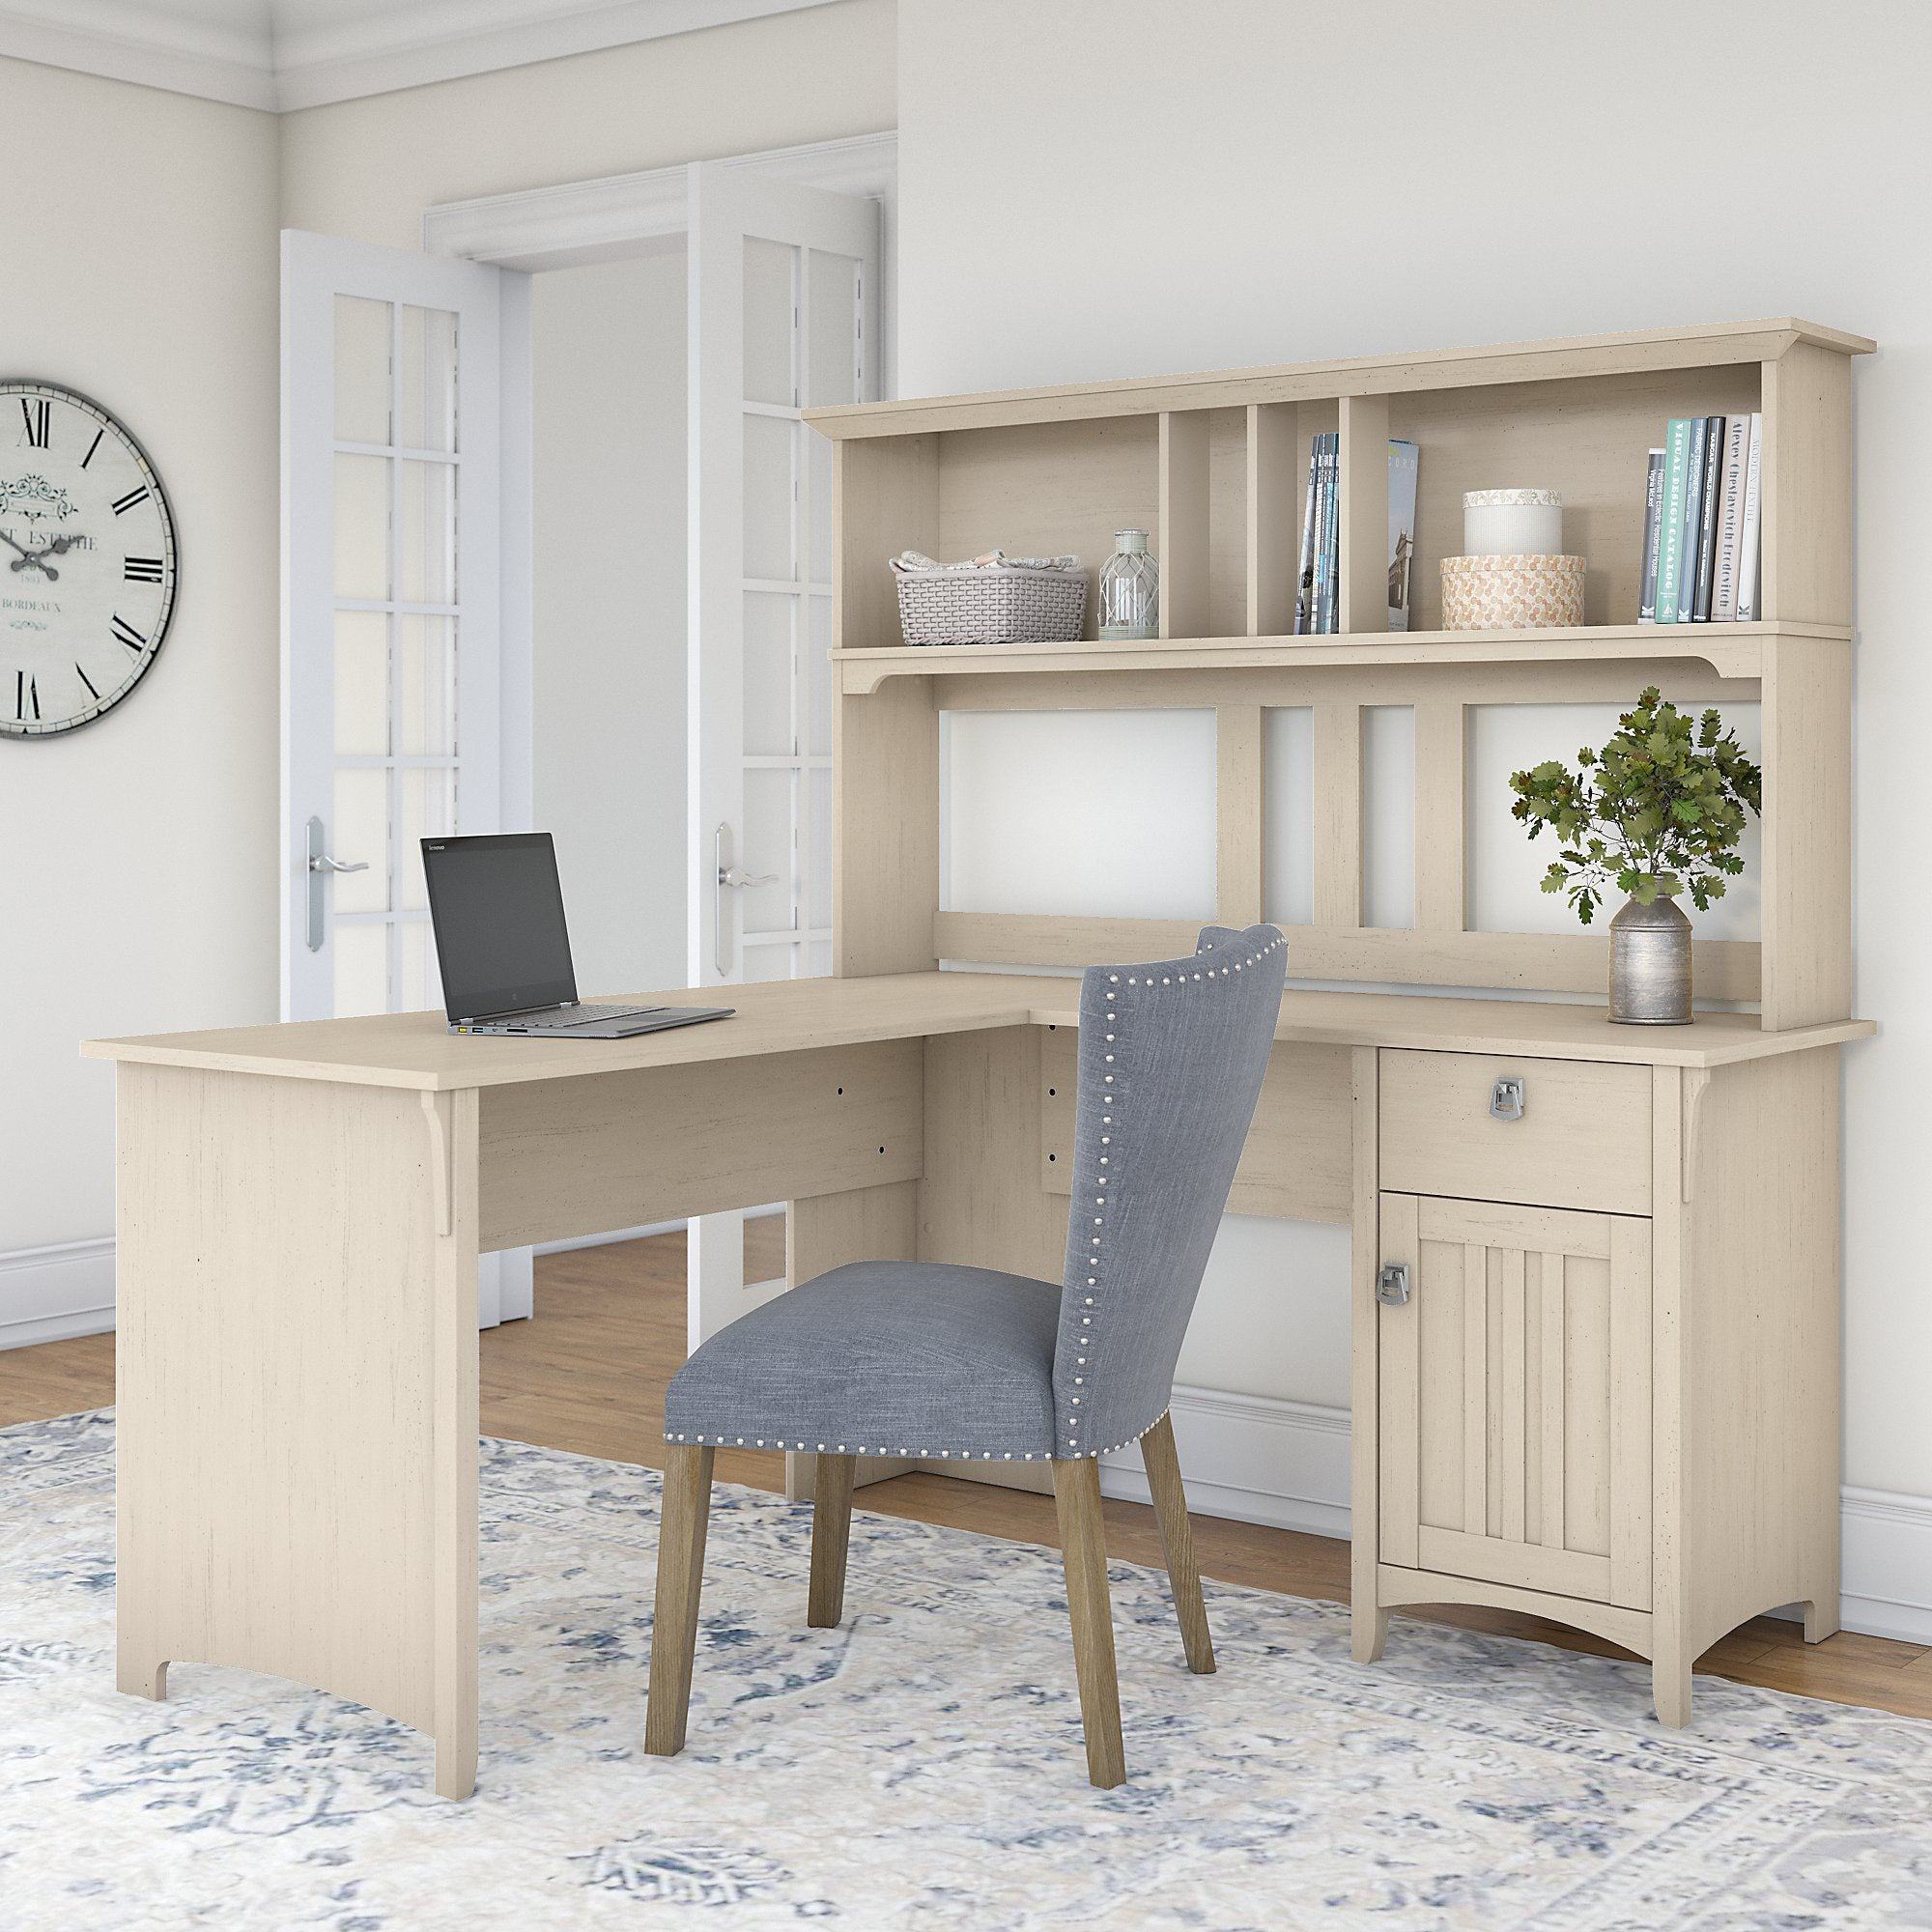 The Gray Barn Ermine 60 Inch L Shaped Desk With Hutch In Antique White